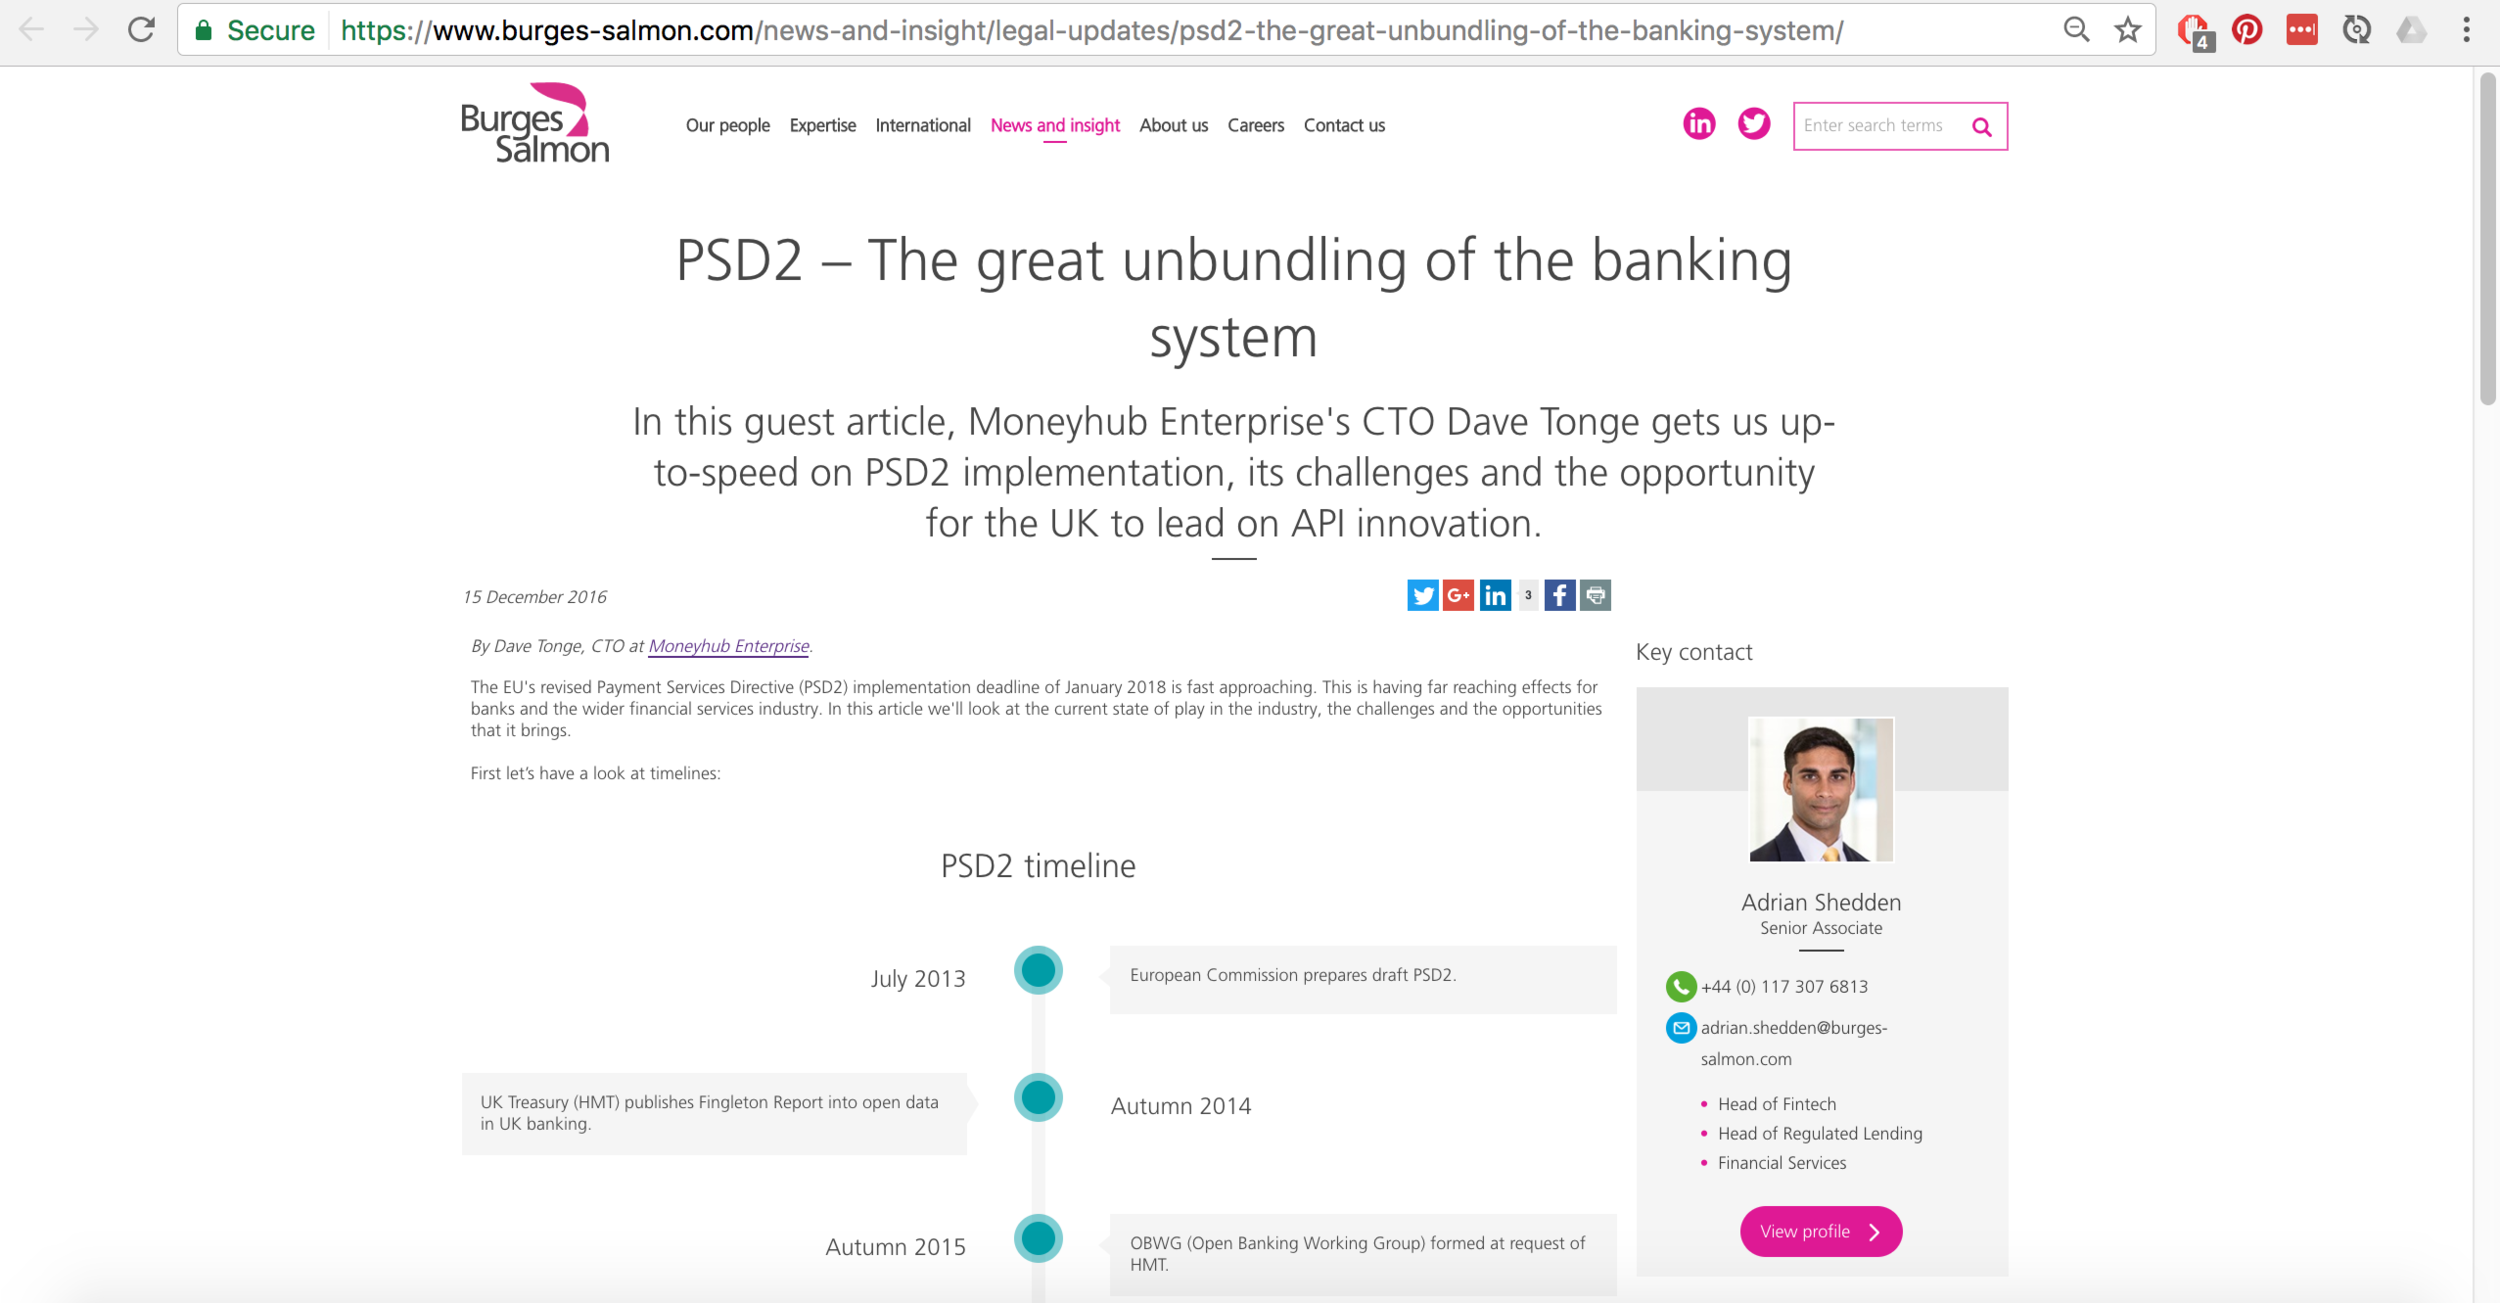 PSD2 article